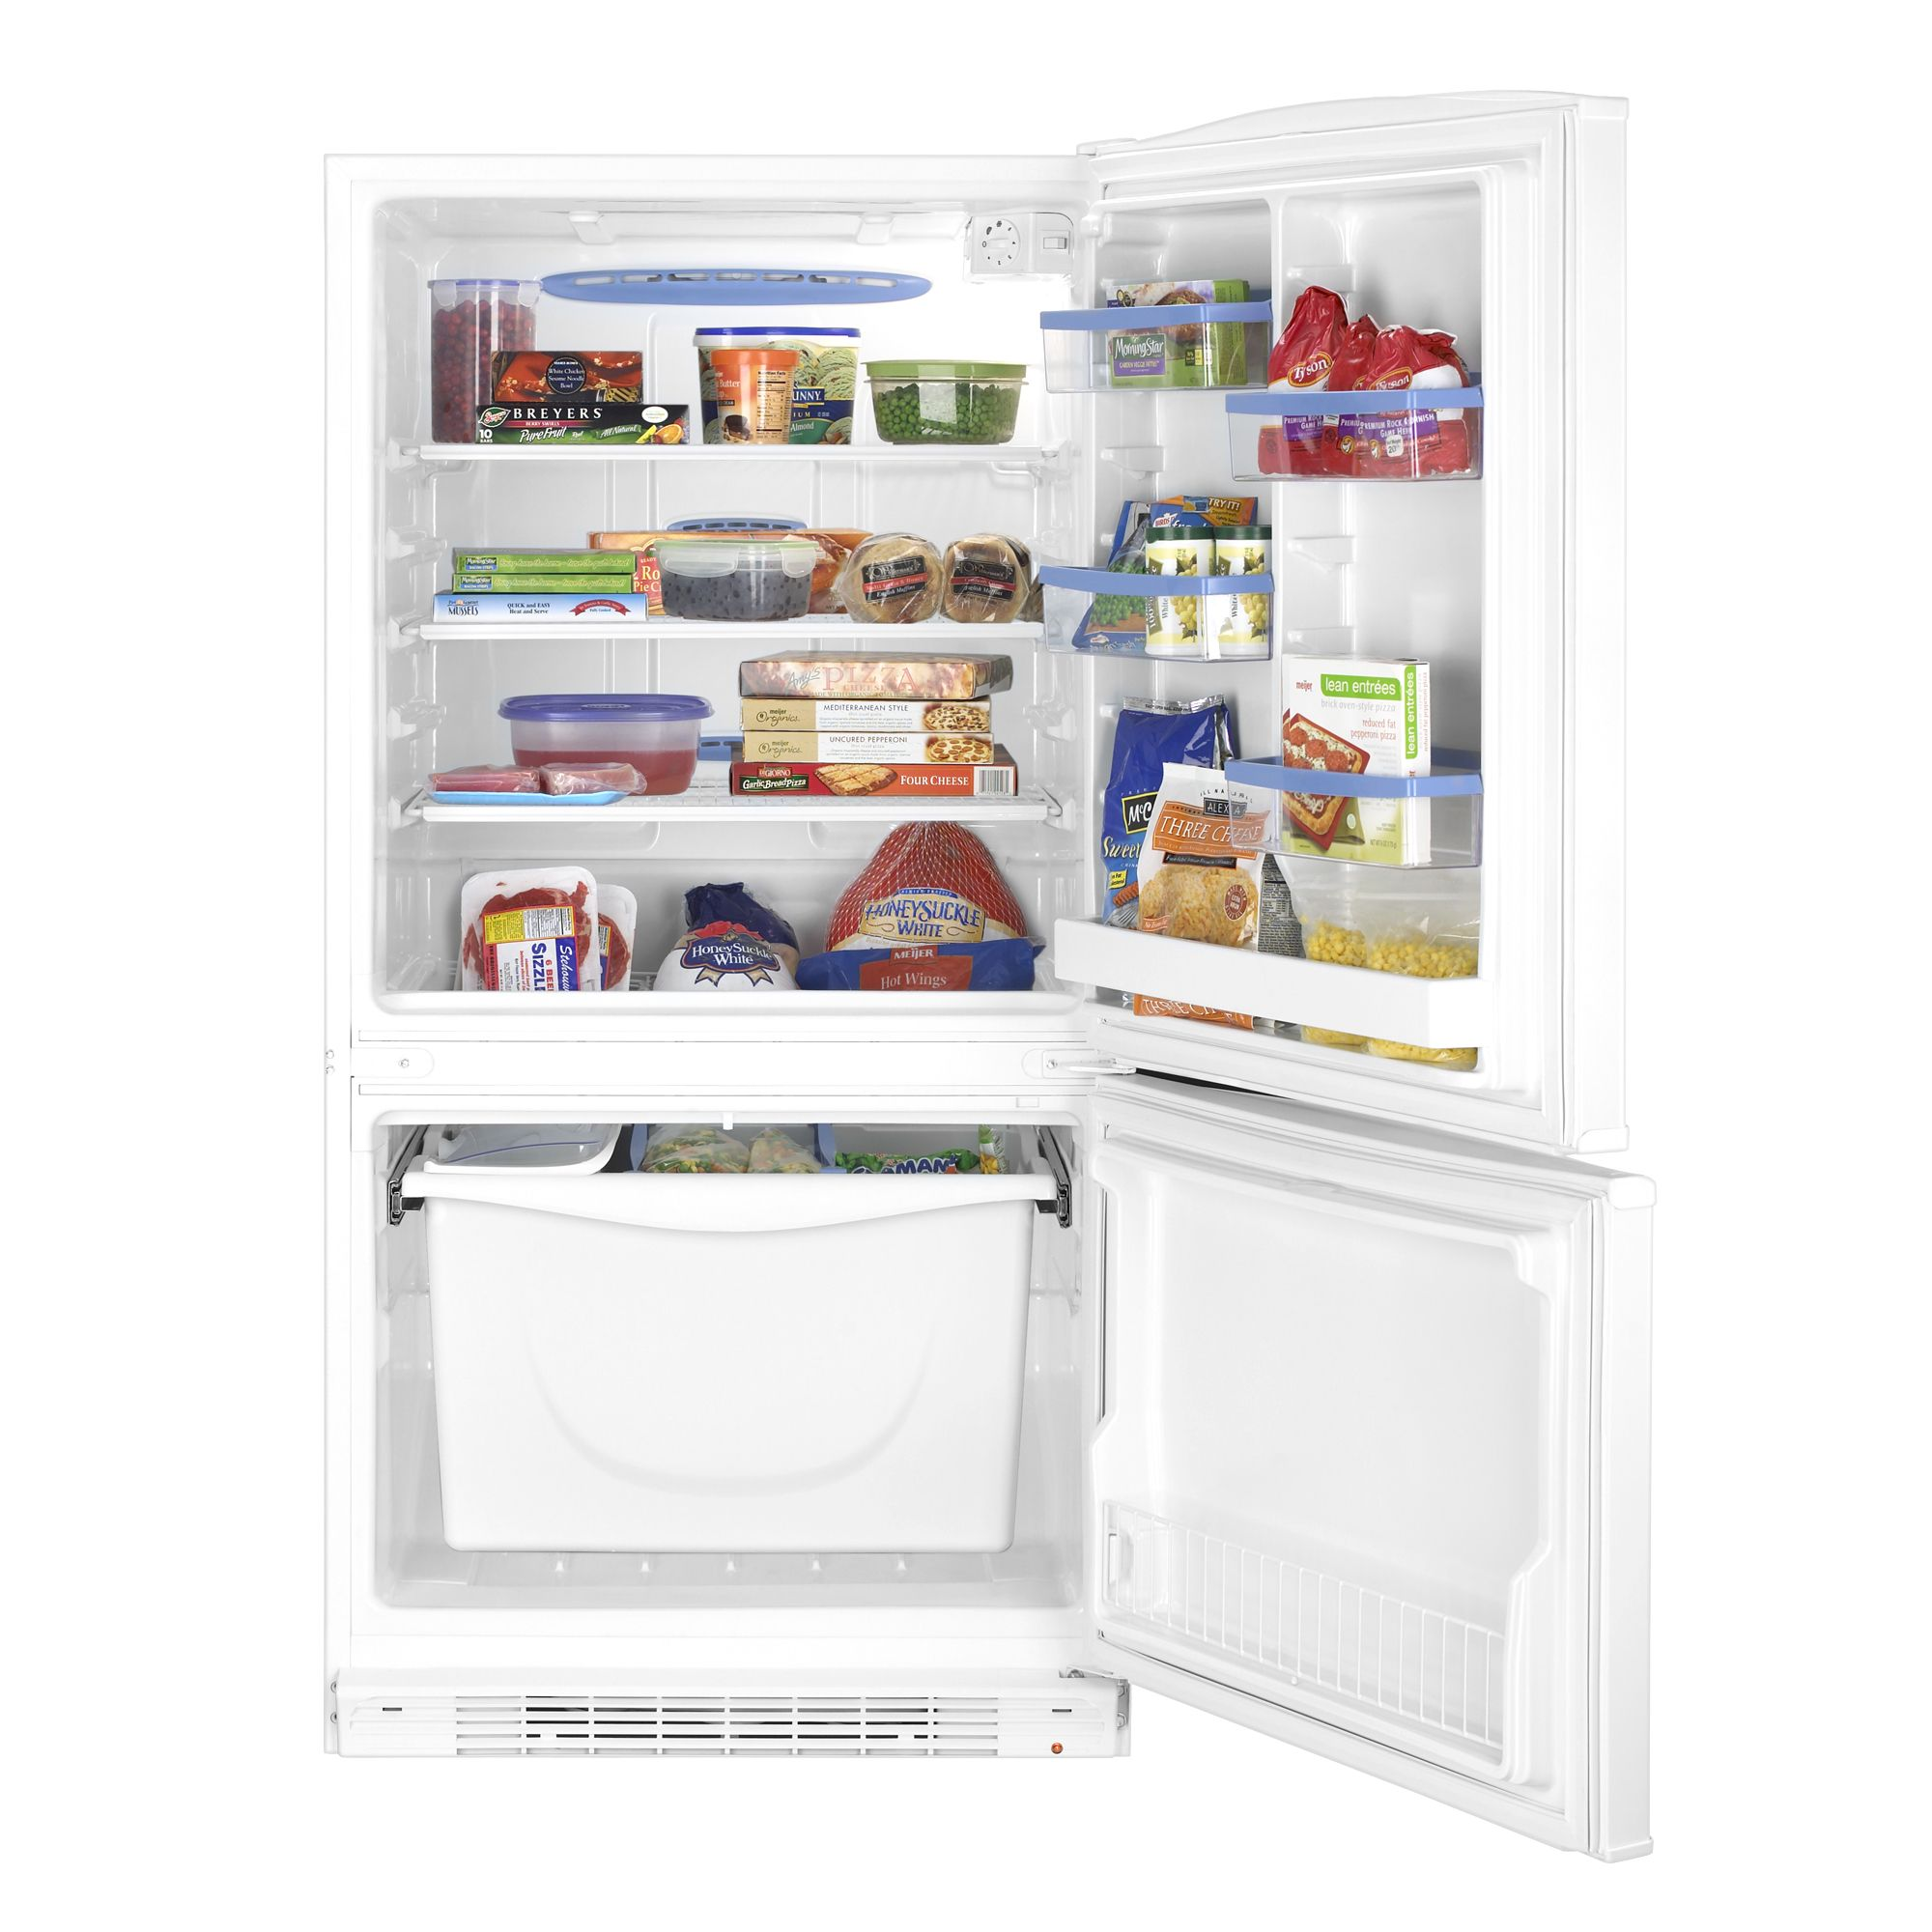 Whirlpool 19.6 cu. ft. Upright Freezer - White